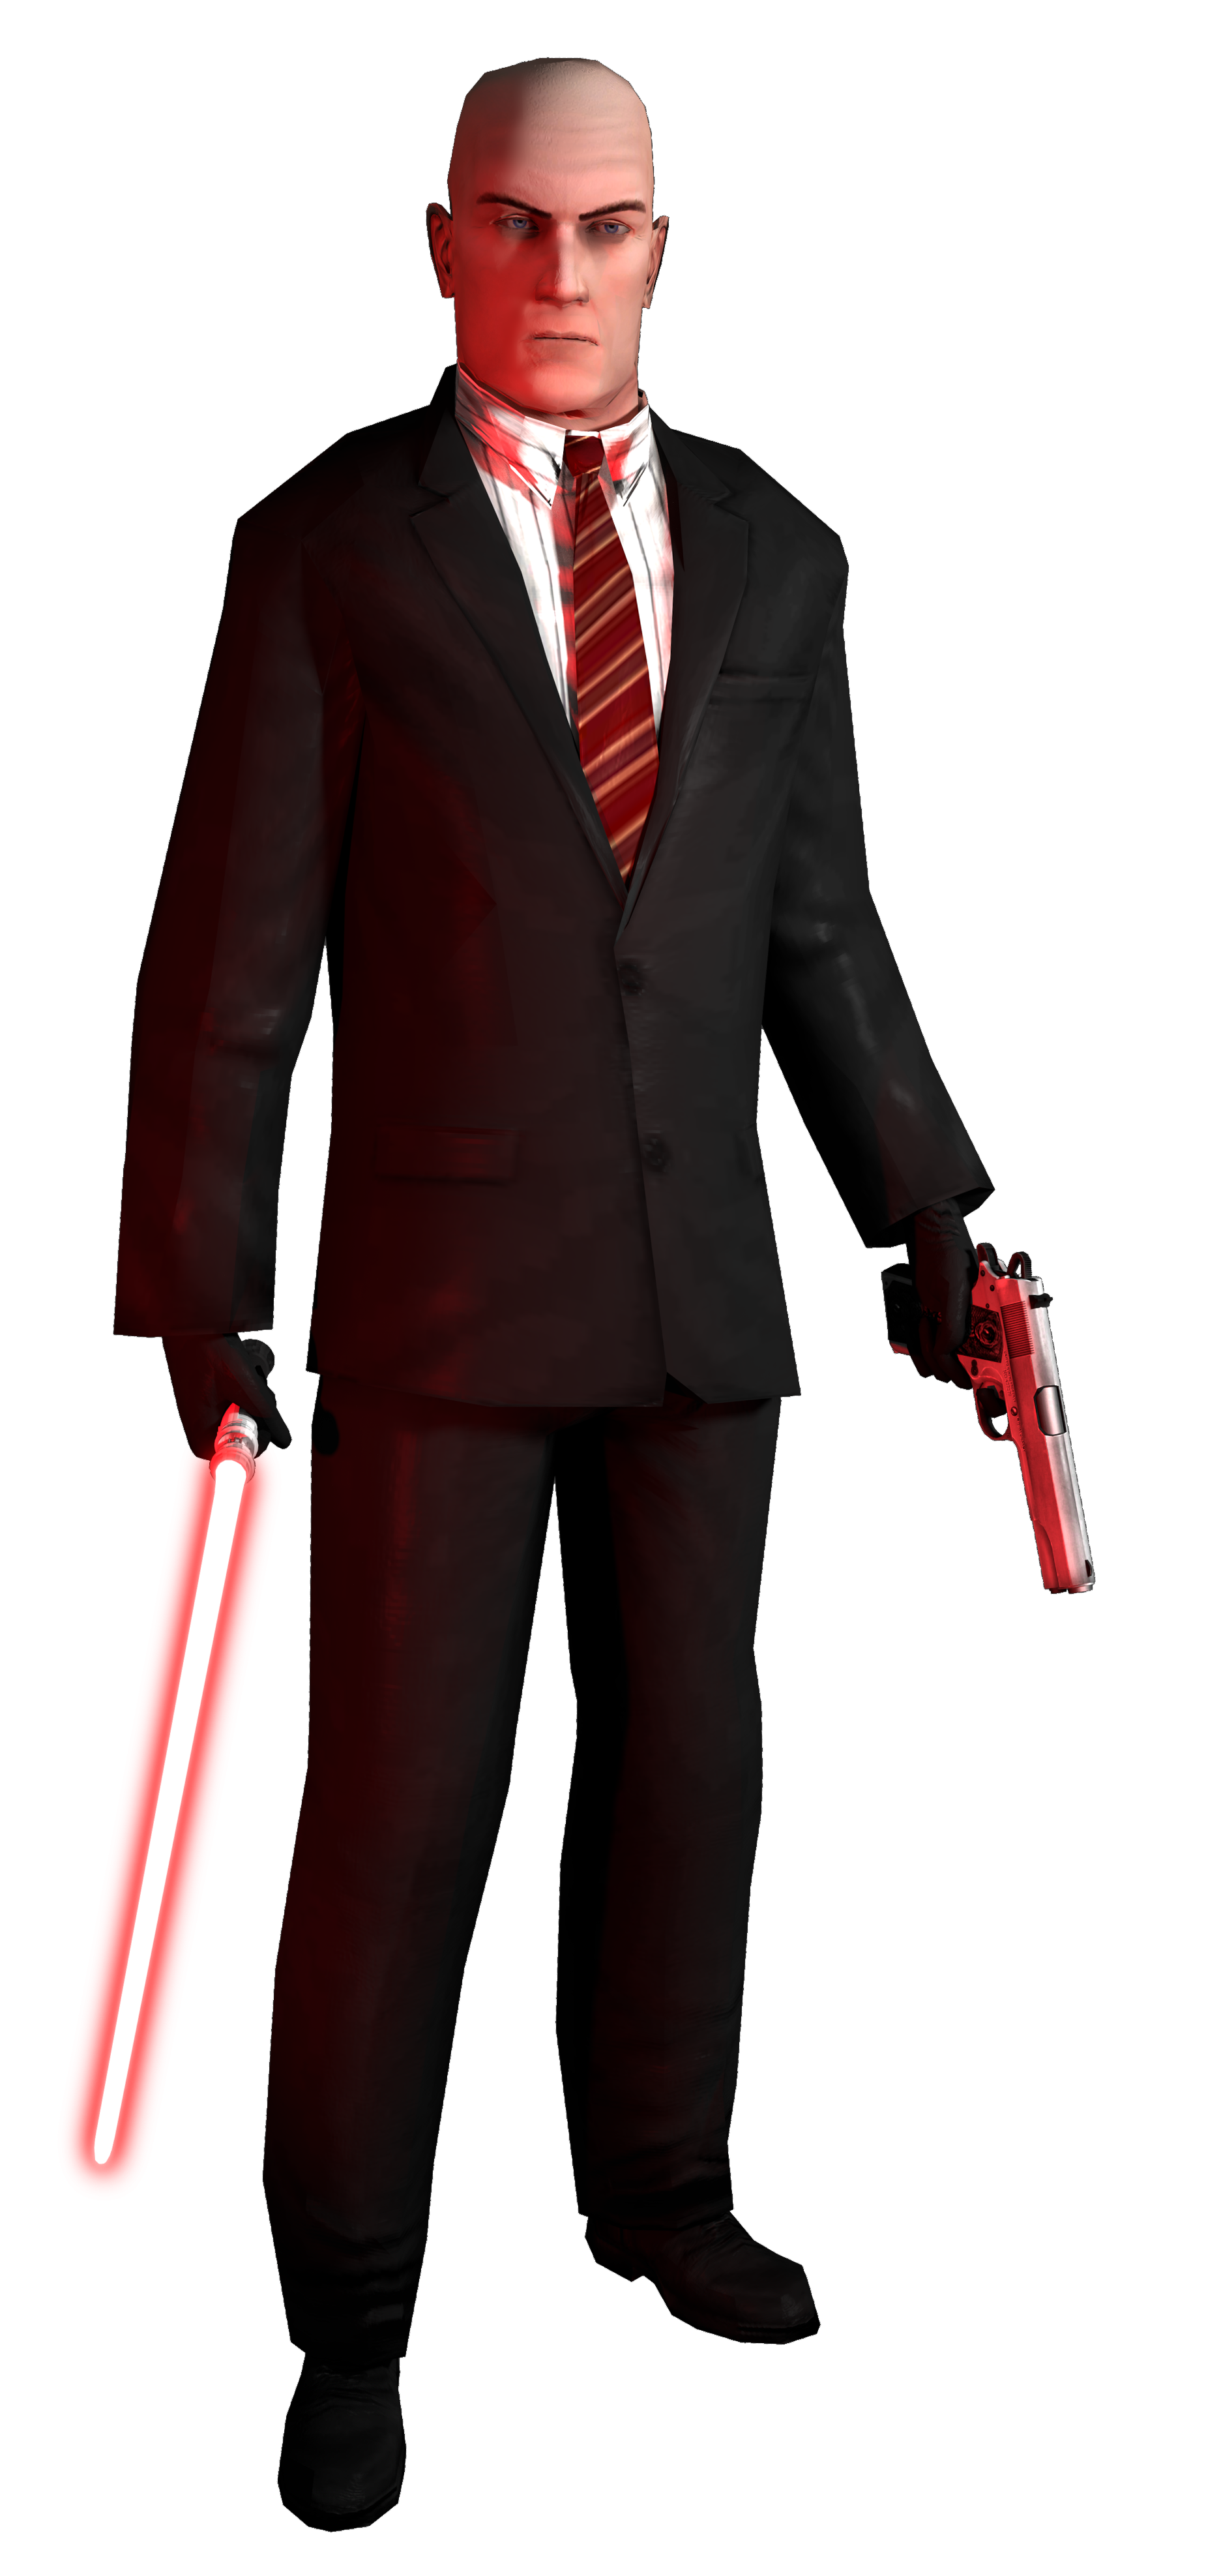 Hitman Transparent Background - Hitman PNG